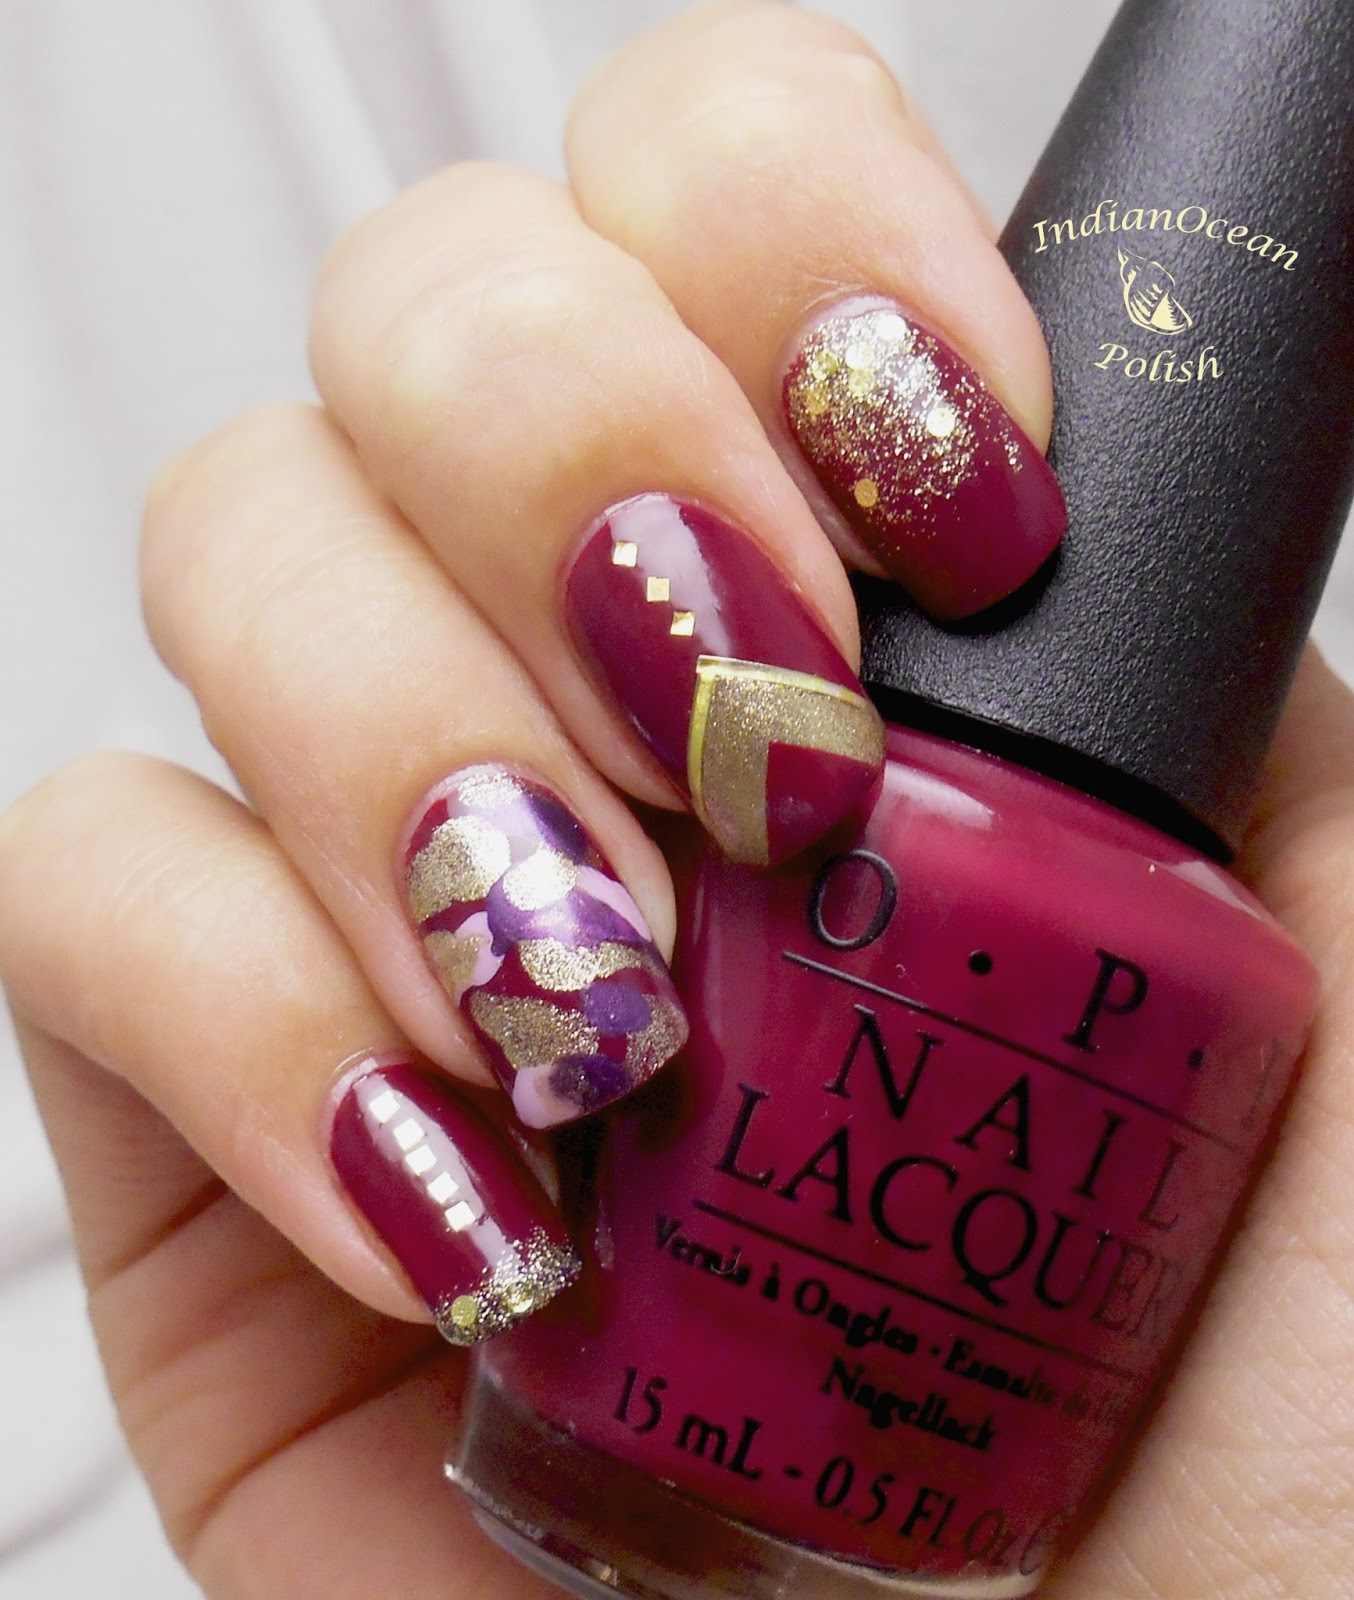 Indian ocean polish purple and gold skittles nail art purple and gold skittles nail art prinsesfo Gallery